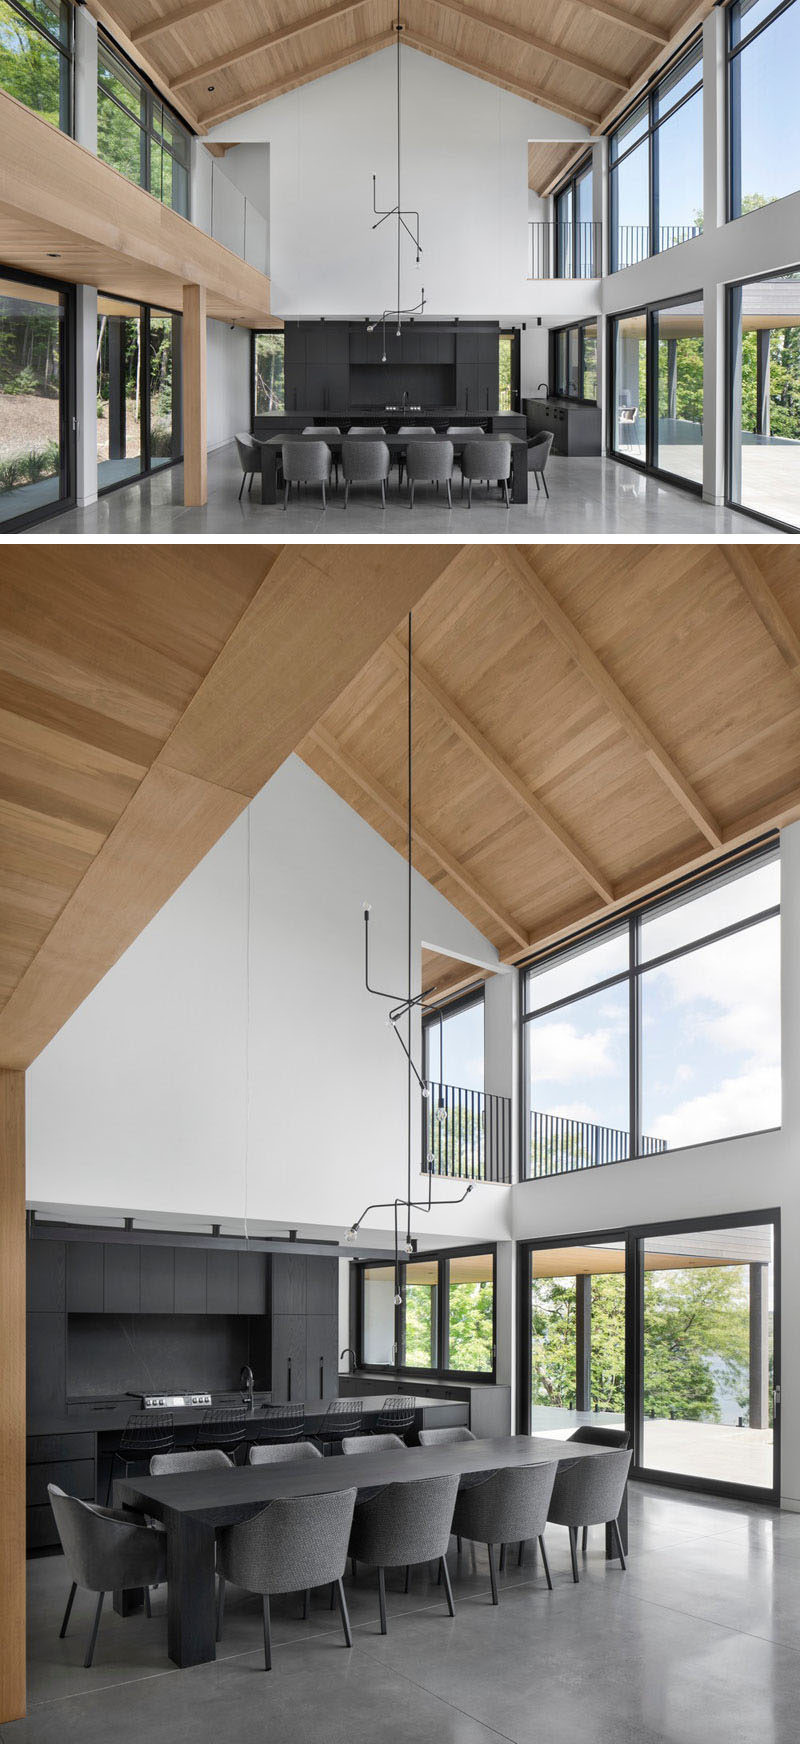 Modern Barnhouse Ideas - This modern barnhouse has a open-plan great room great room, where the grey furniture and dark kitchen complement the polished concrete floors, but at the same time contrast the bright interior. #ModernBarnhouse #ModernArchitecture #DarkKitchen #HighCeilings